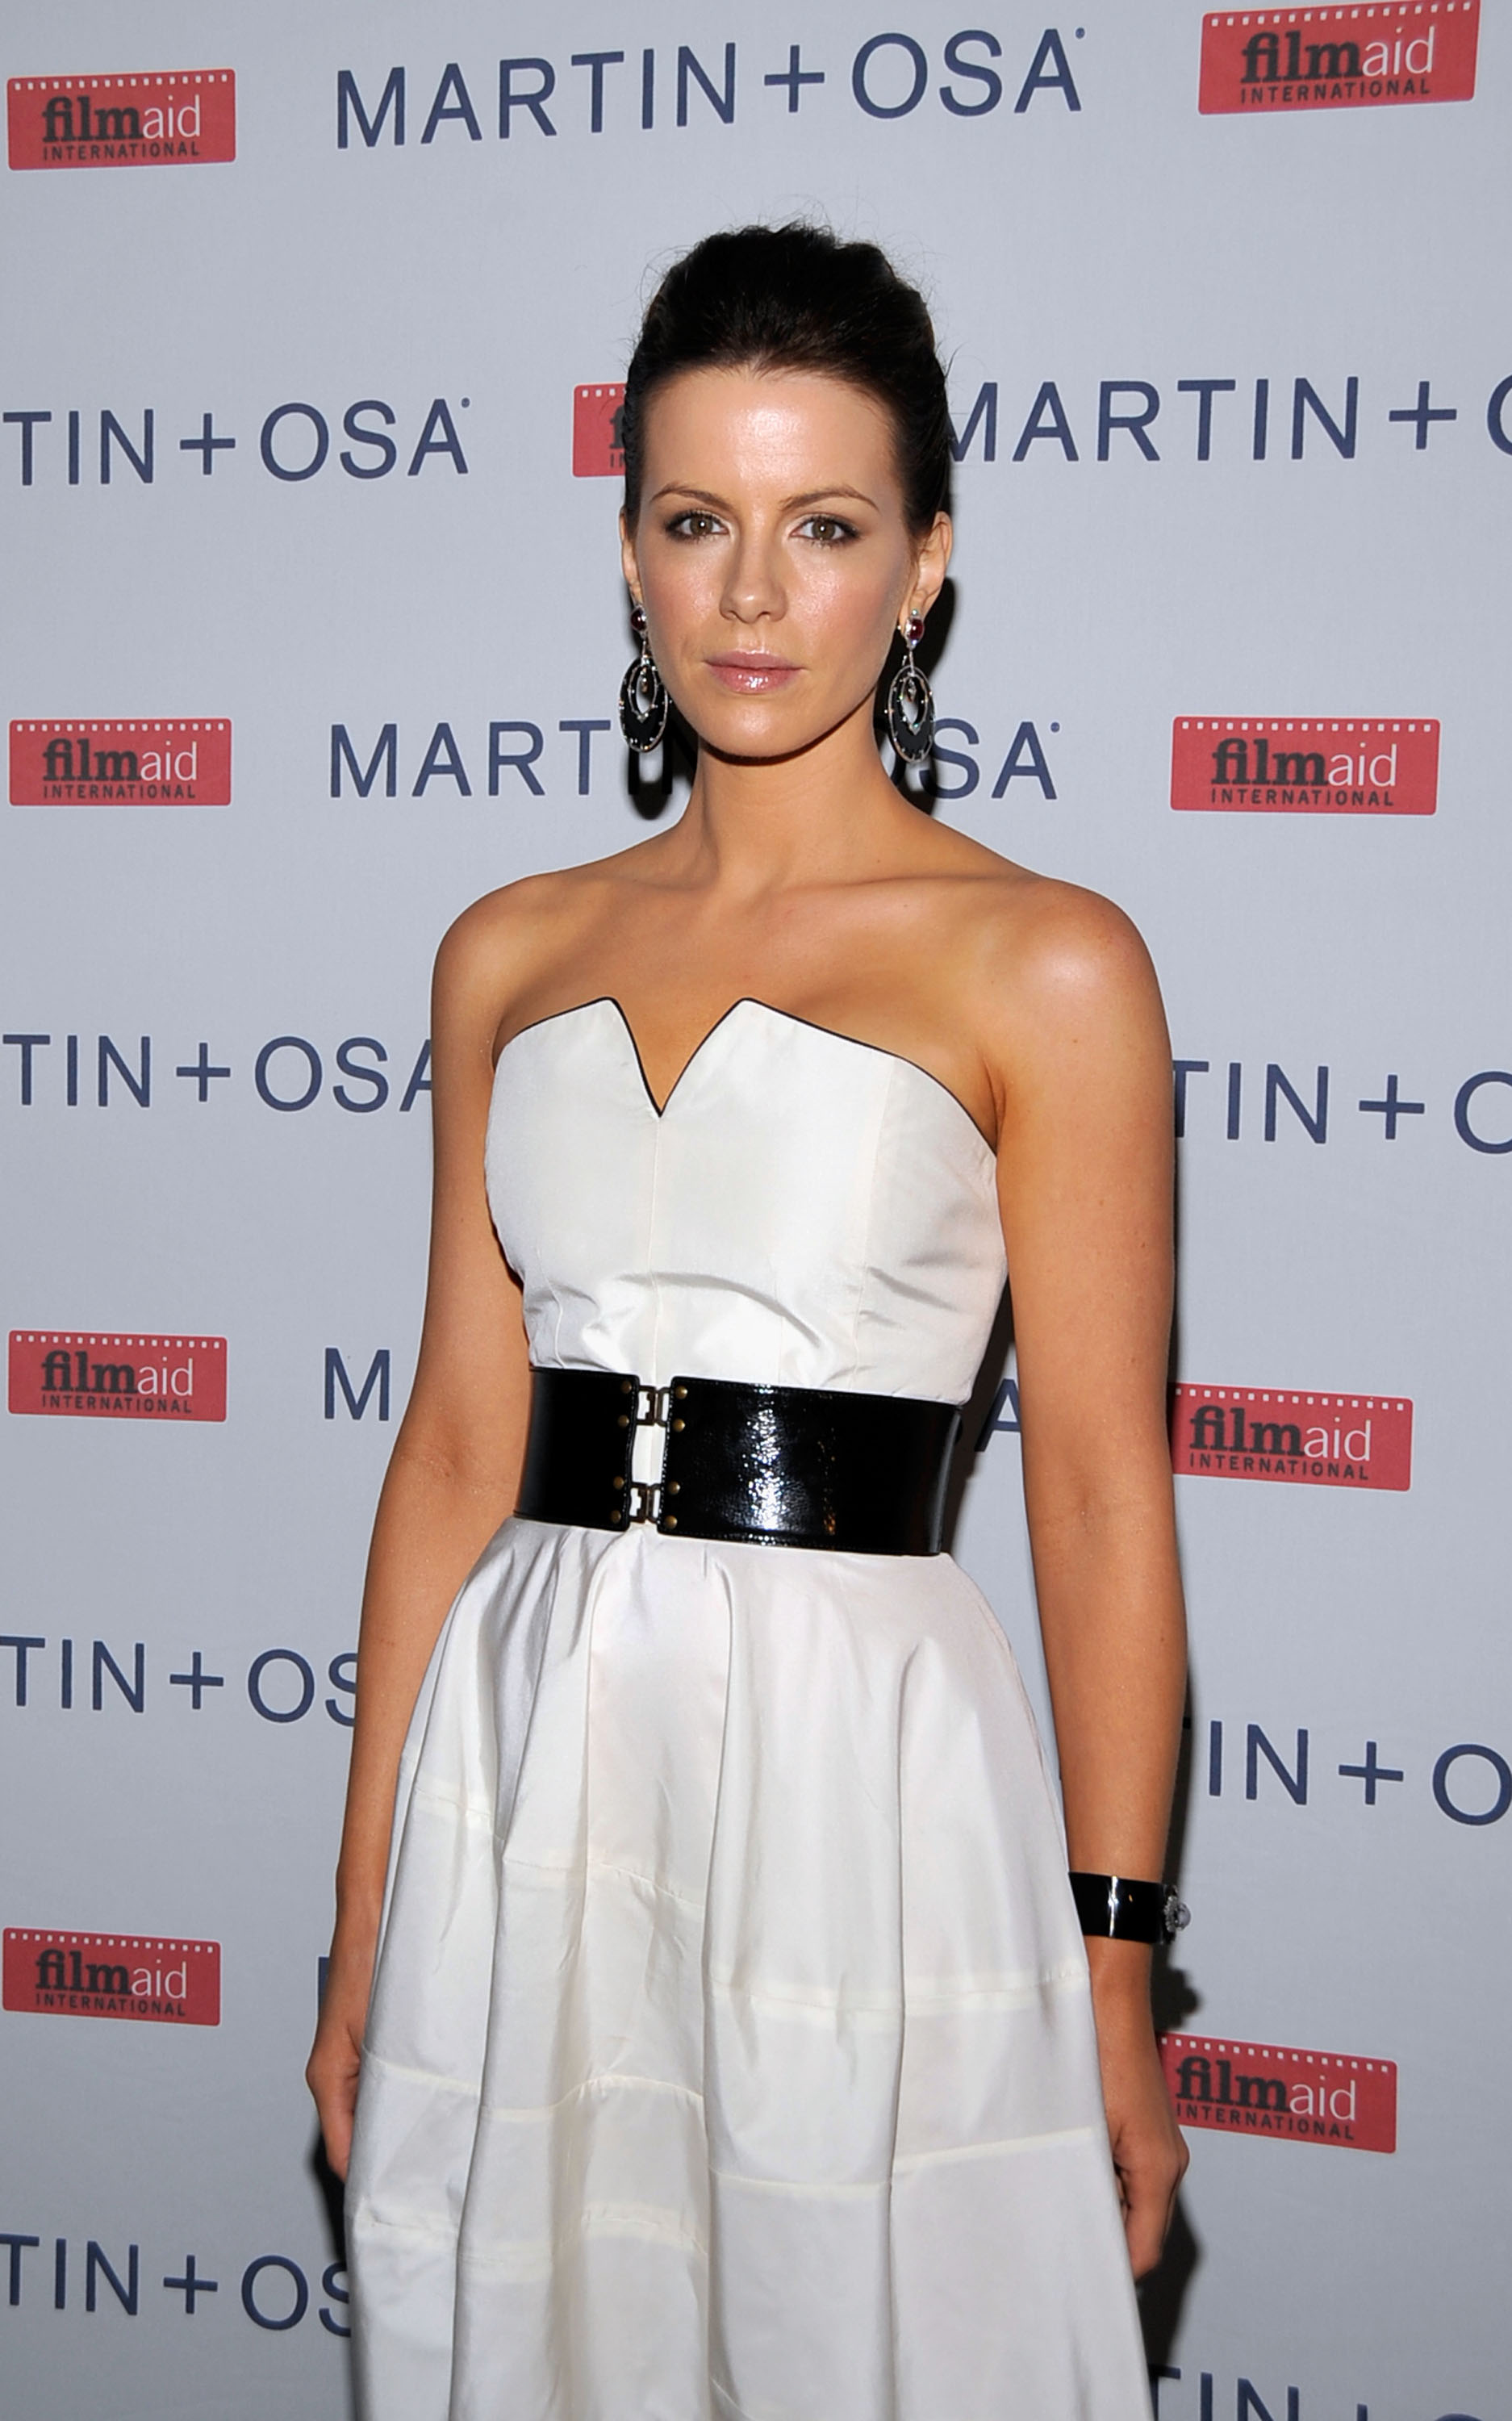 08683_Celebutopia-Kate_Beckinsale-Martin_3_Osa2s_Screening_Of_All_About_Eve_in_Hollywood-06_122_748lo.jpg